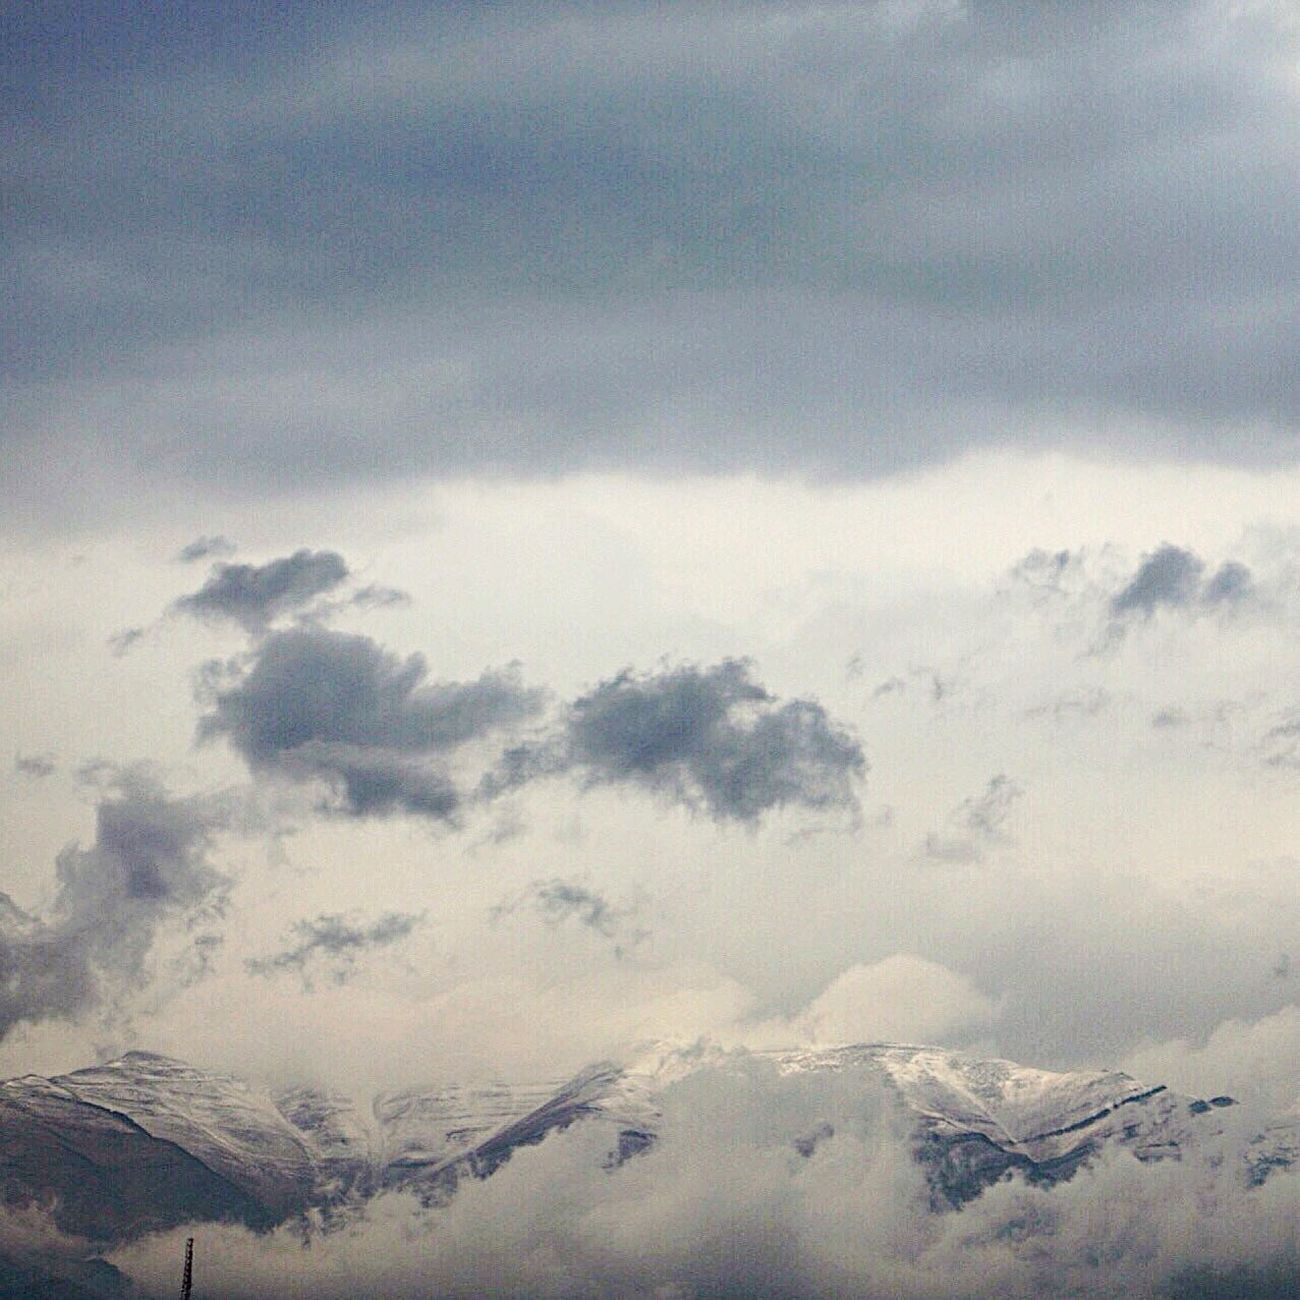 Clouds And Mountains Sky And Clouds First Snow ♥ Sky_collection Canon 70d shemiran mountains👉🏾😙